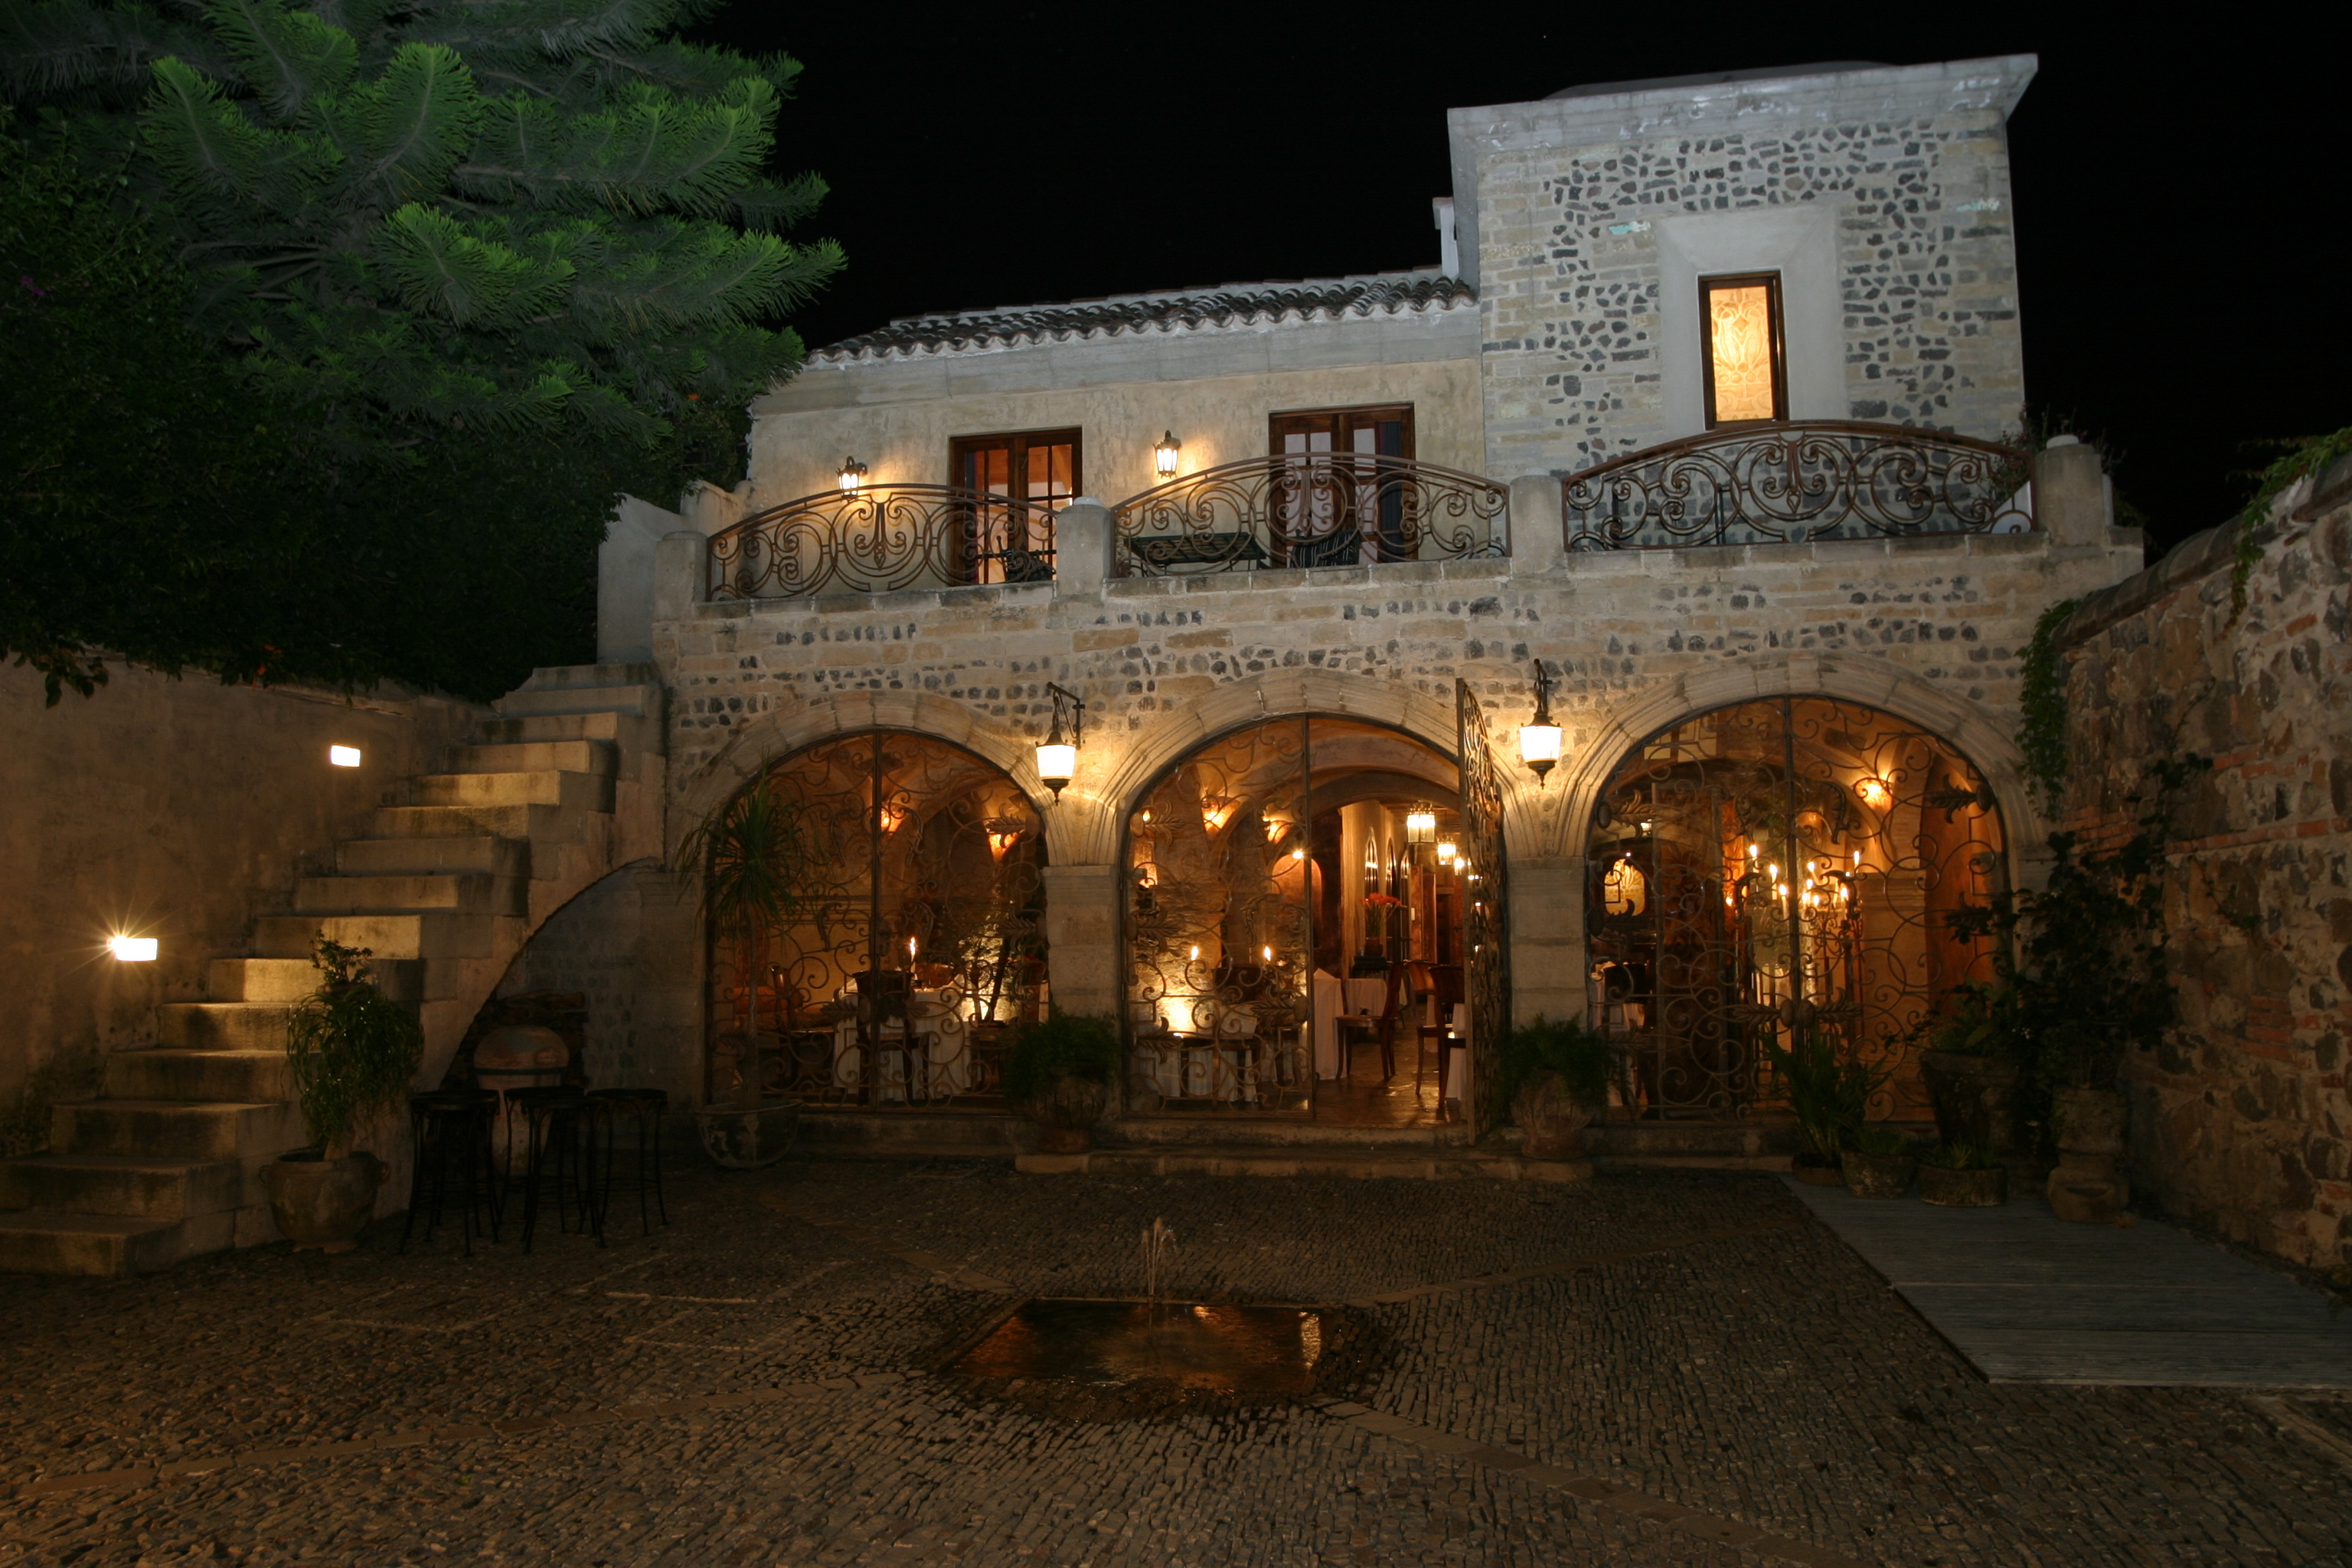 Night image of la cueva exterior